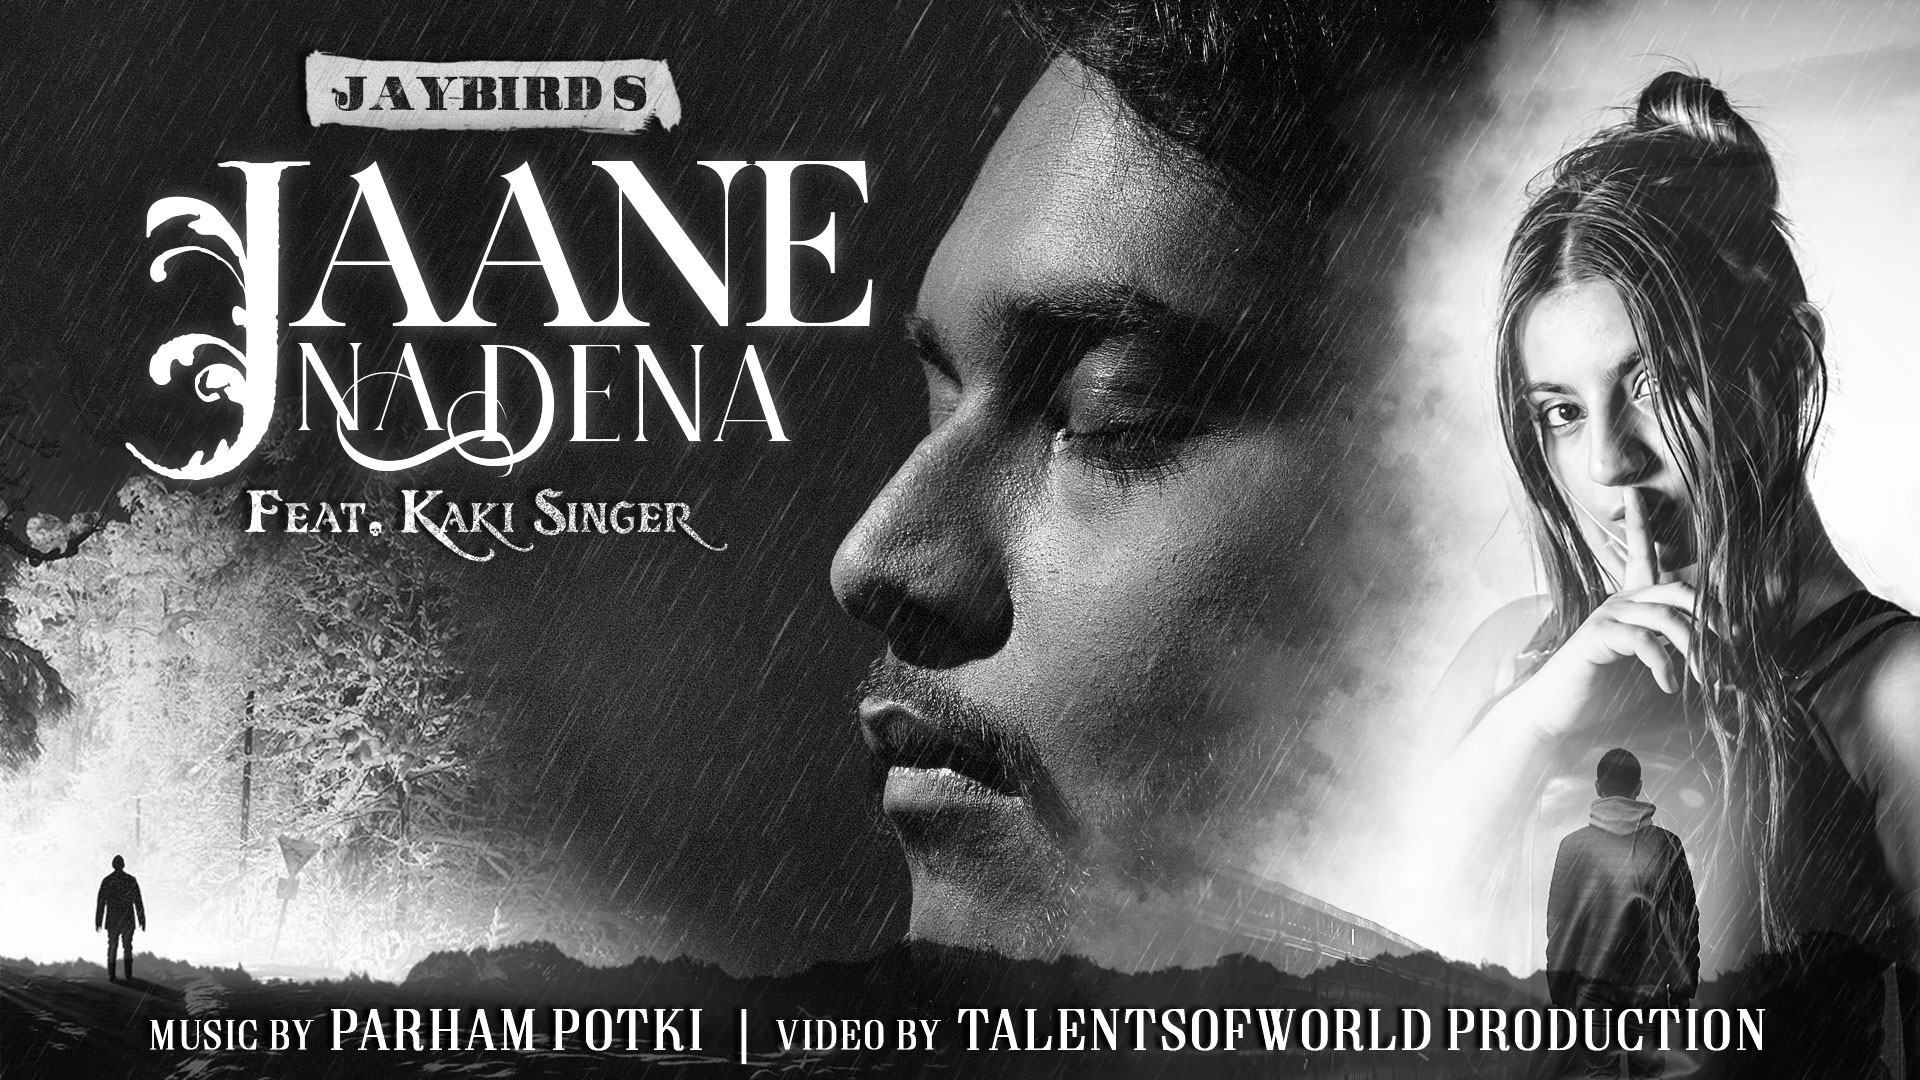 Jaybird's new song 'Jaane Na Dena' is a must listen